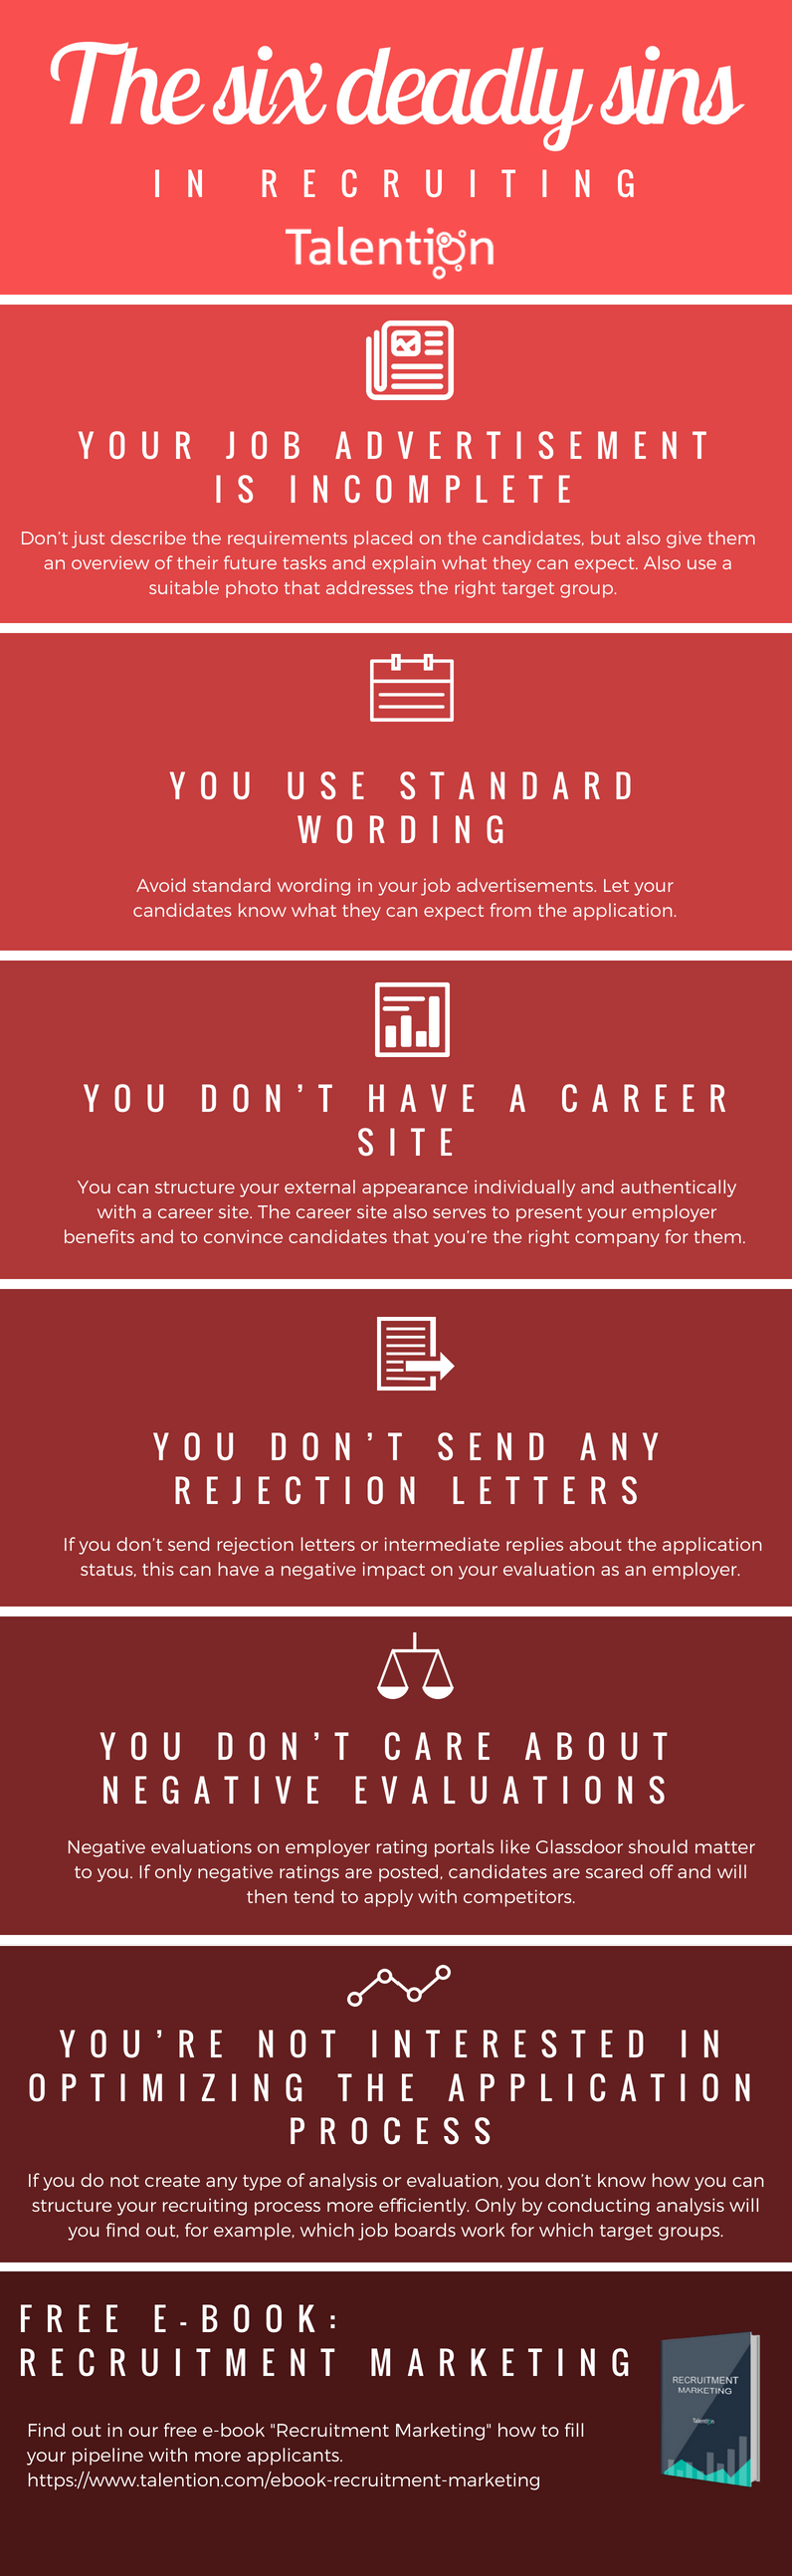 The six deadly sins in recruiting